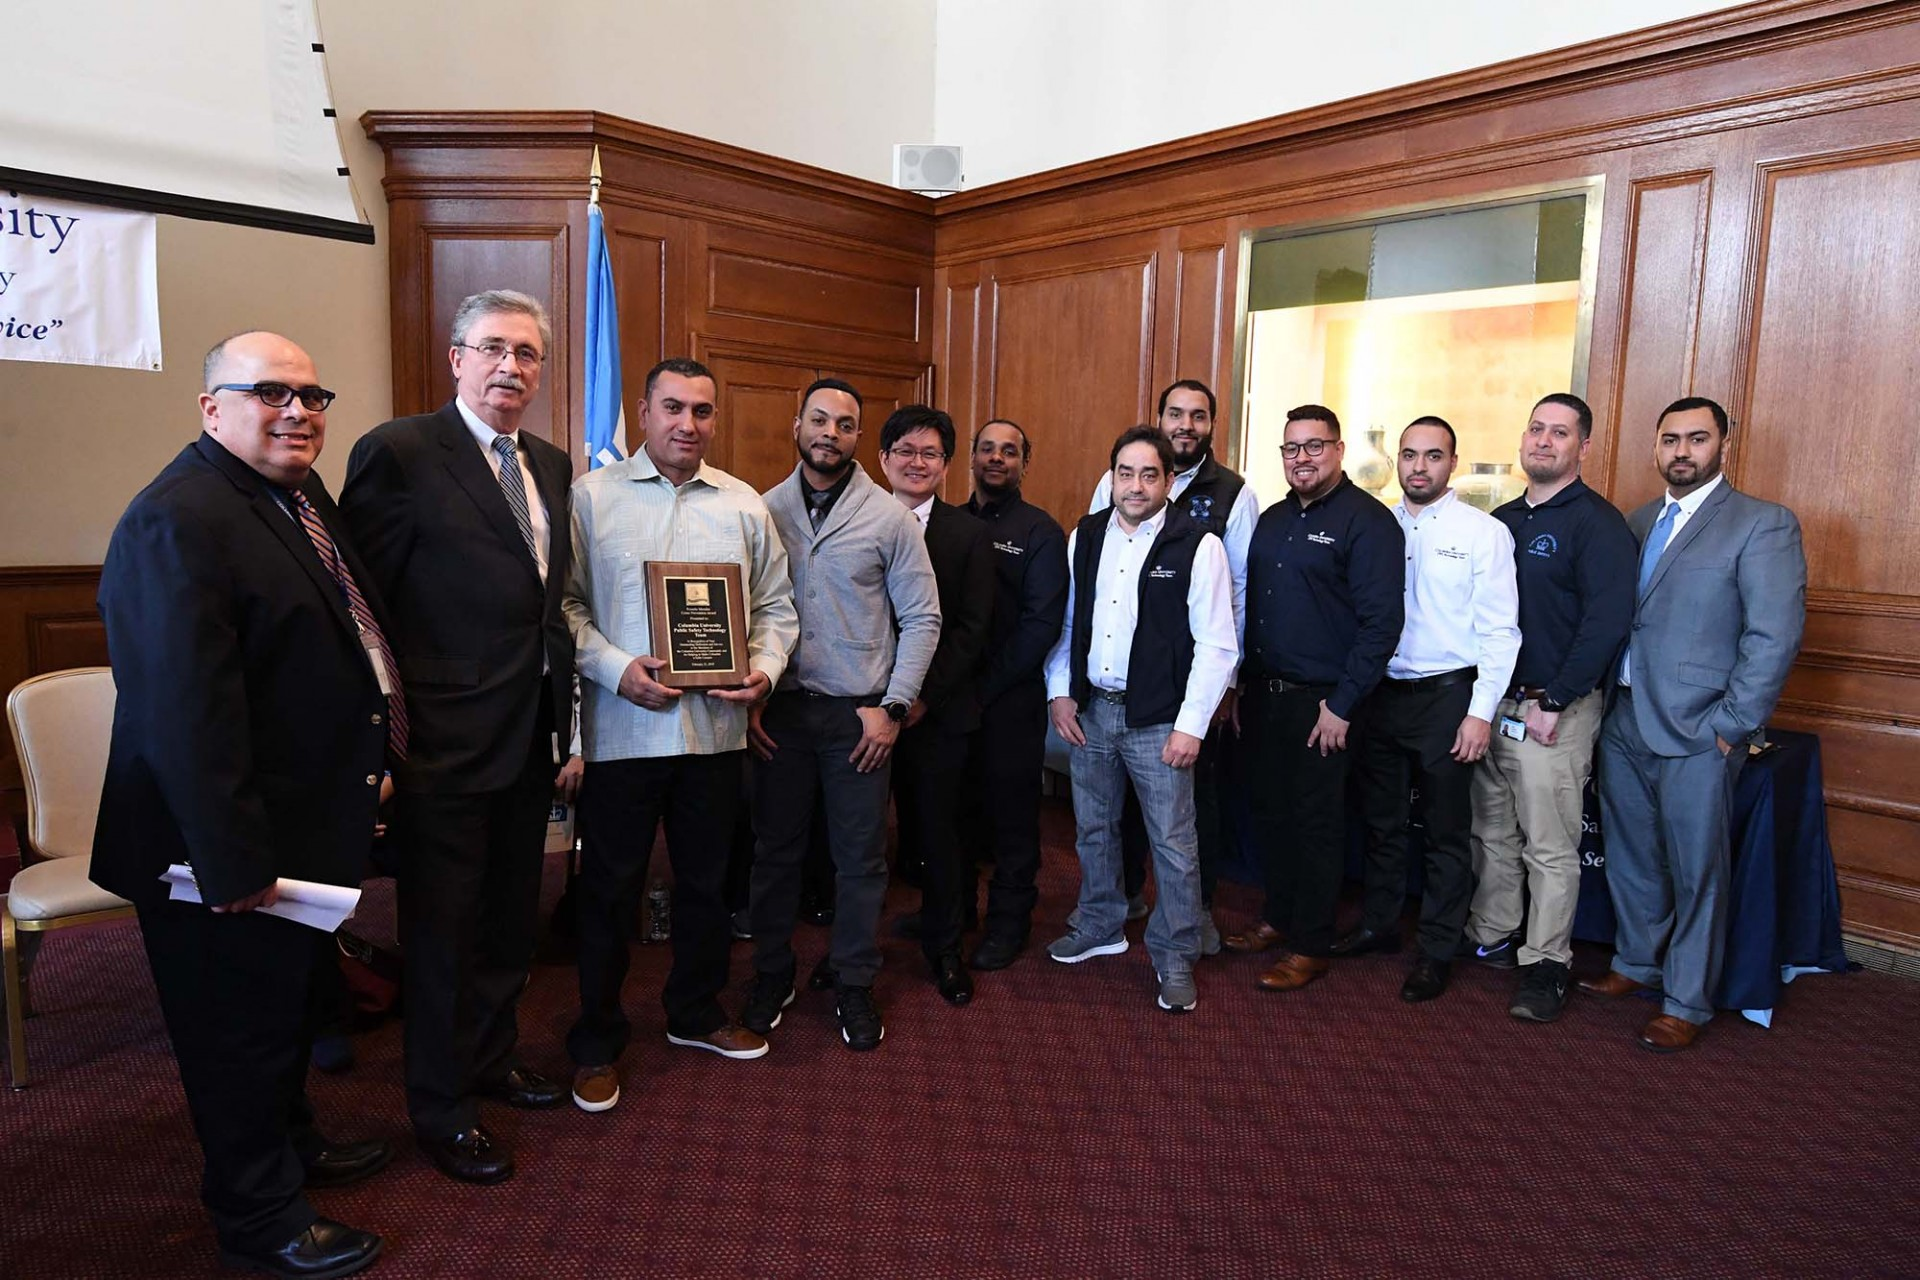 Technology team accepts Crime Prevention Award